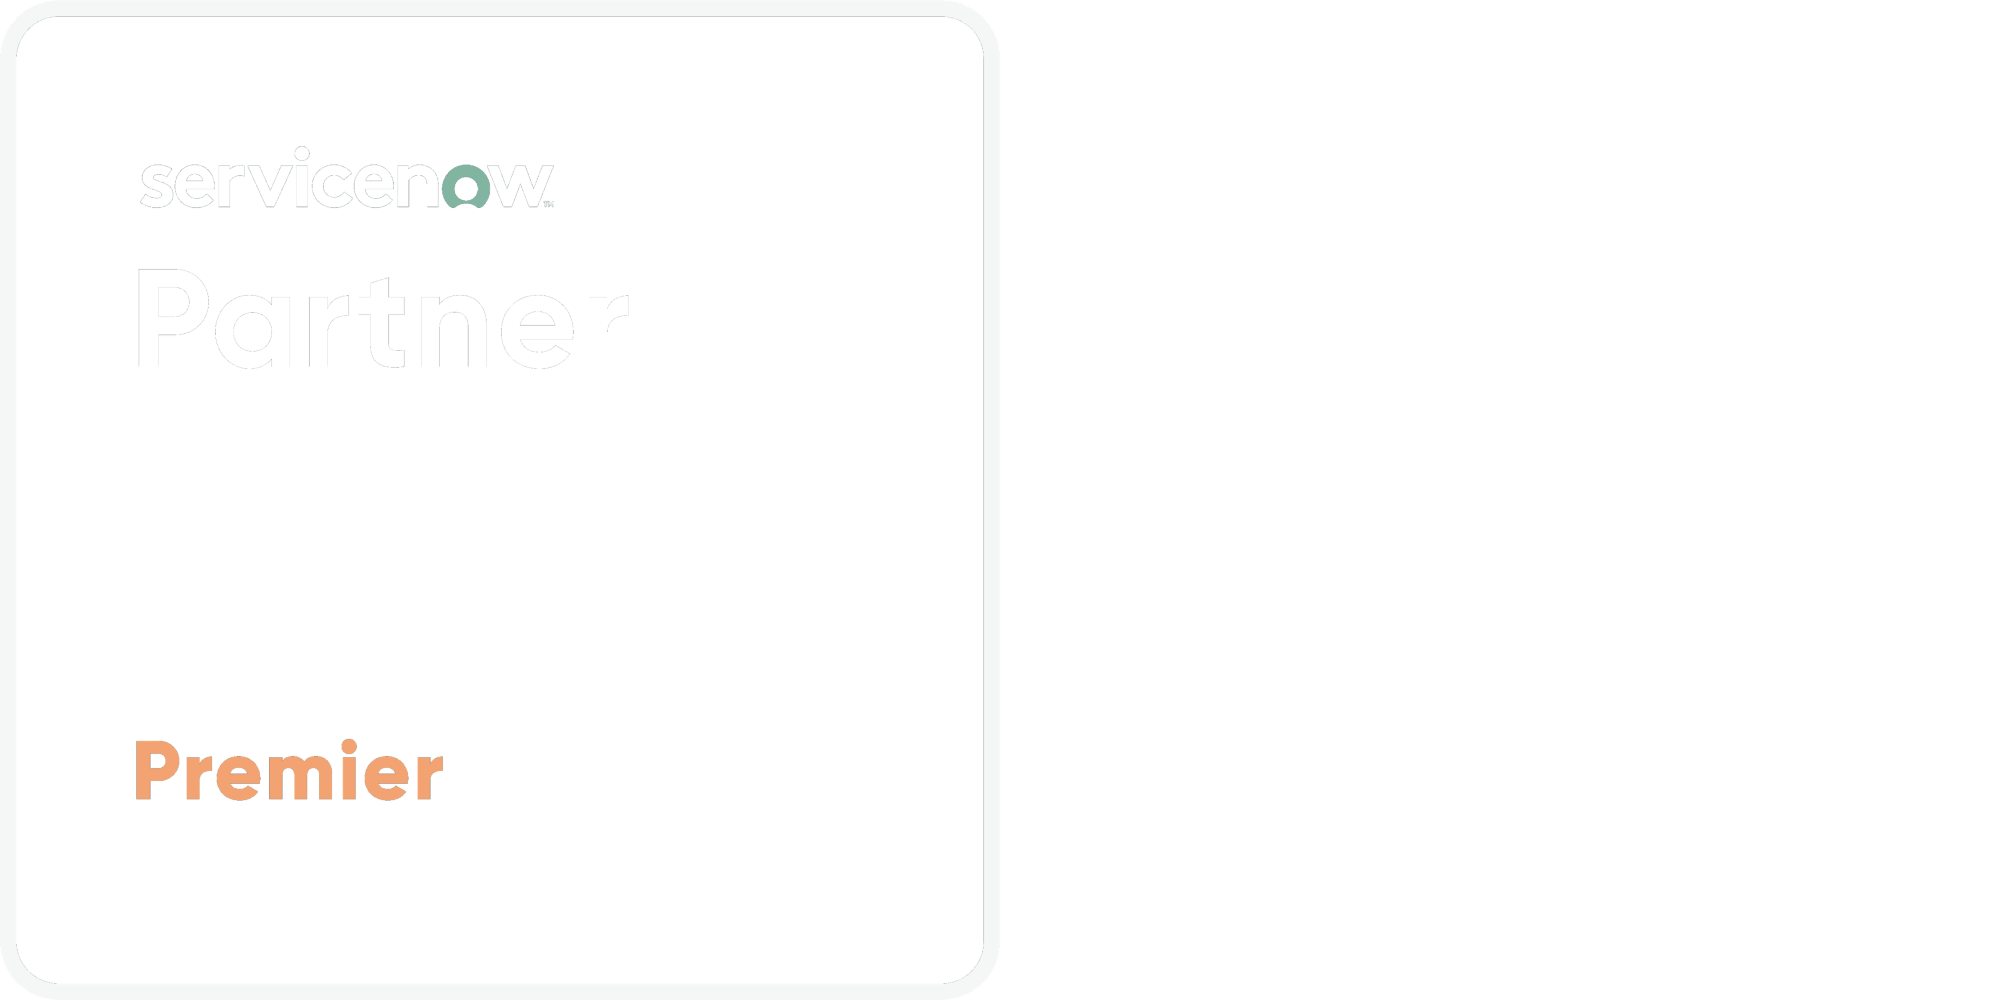 syscovery Solve & Serve is ServiceNow Premier Services Partner